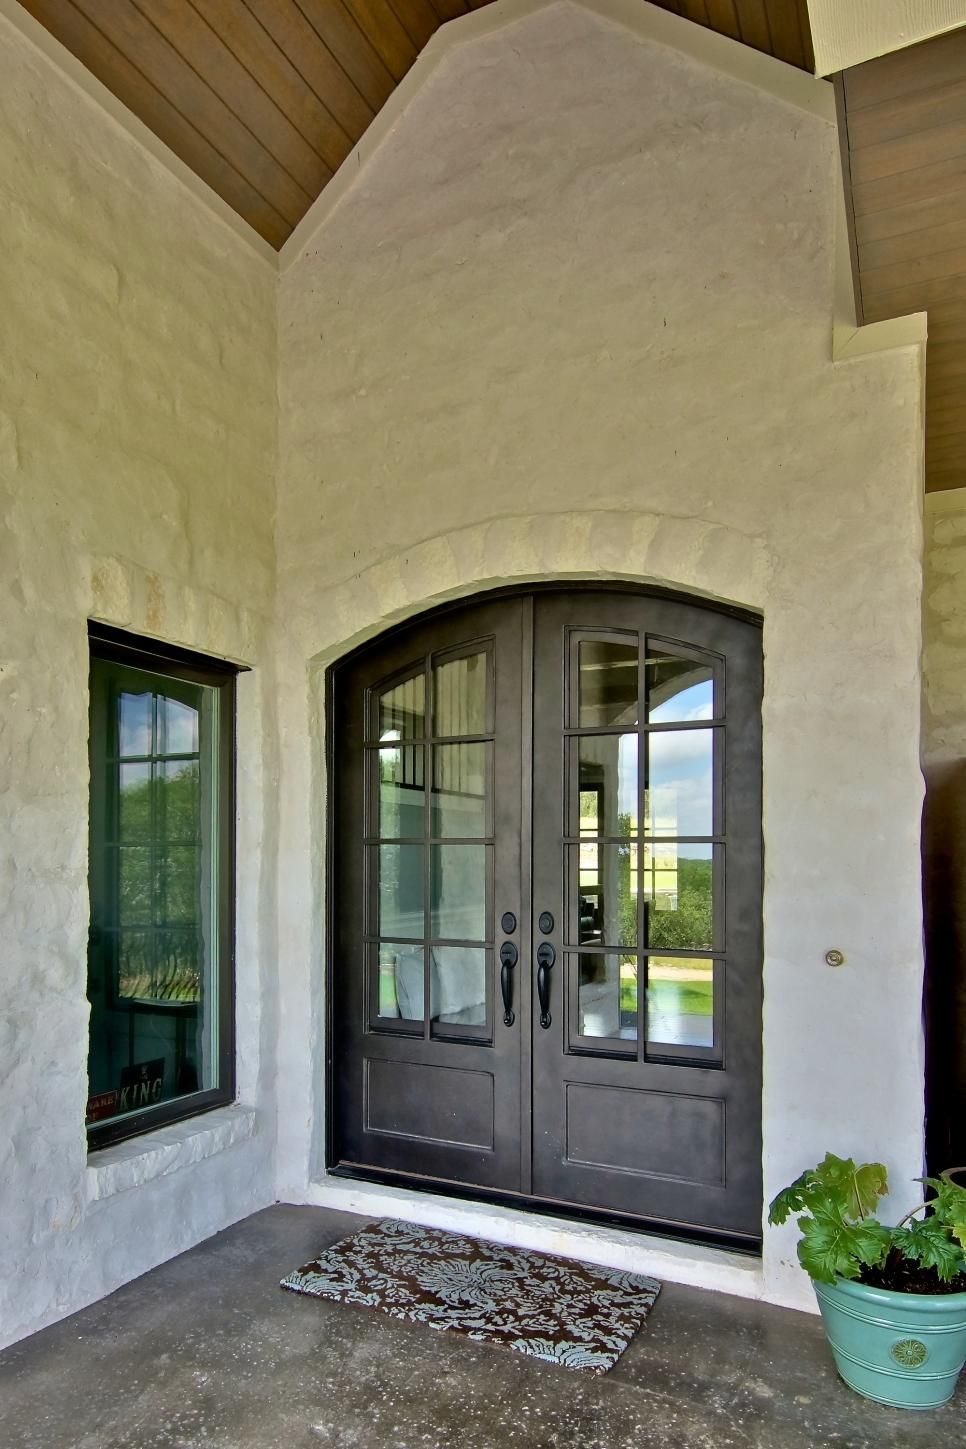 This home's entryway boasts a gorgeous stone exterior and arched doors, accomplishing a classic French country look.